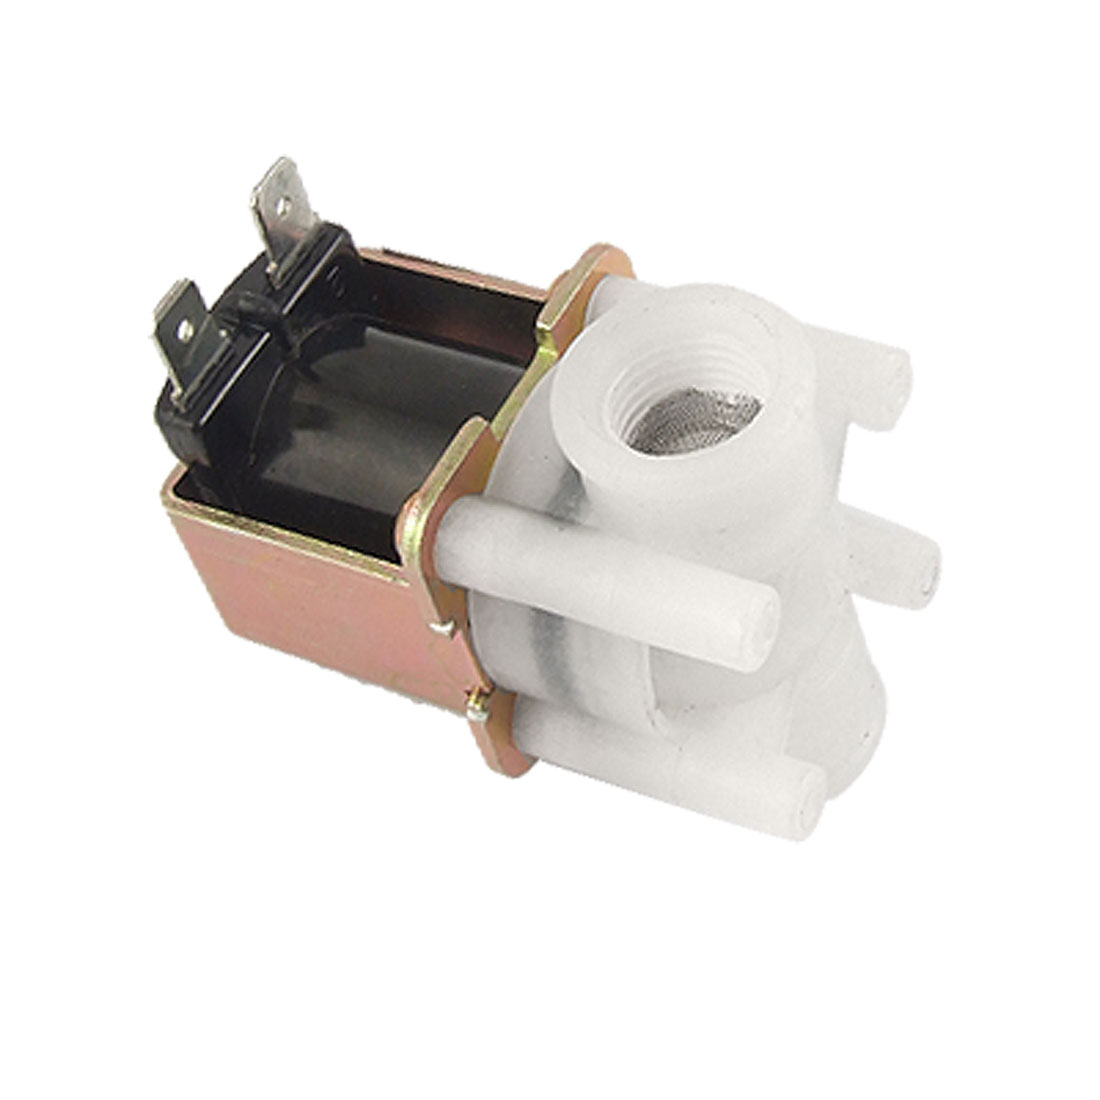 DC 24V Female Thread Water Flush Solenoid Valve